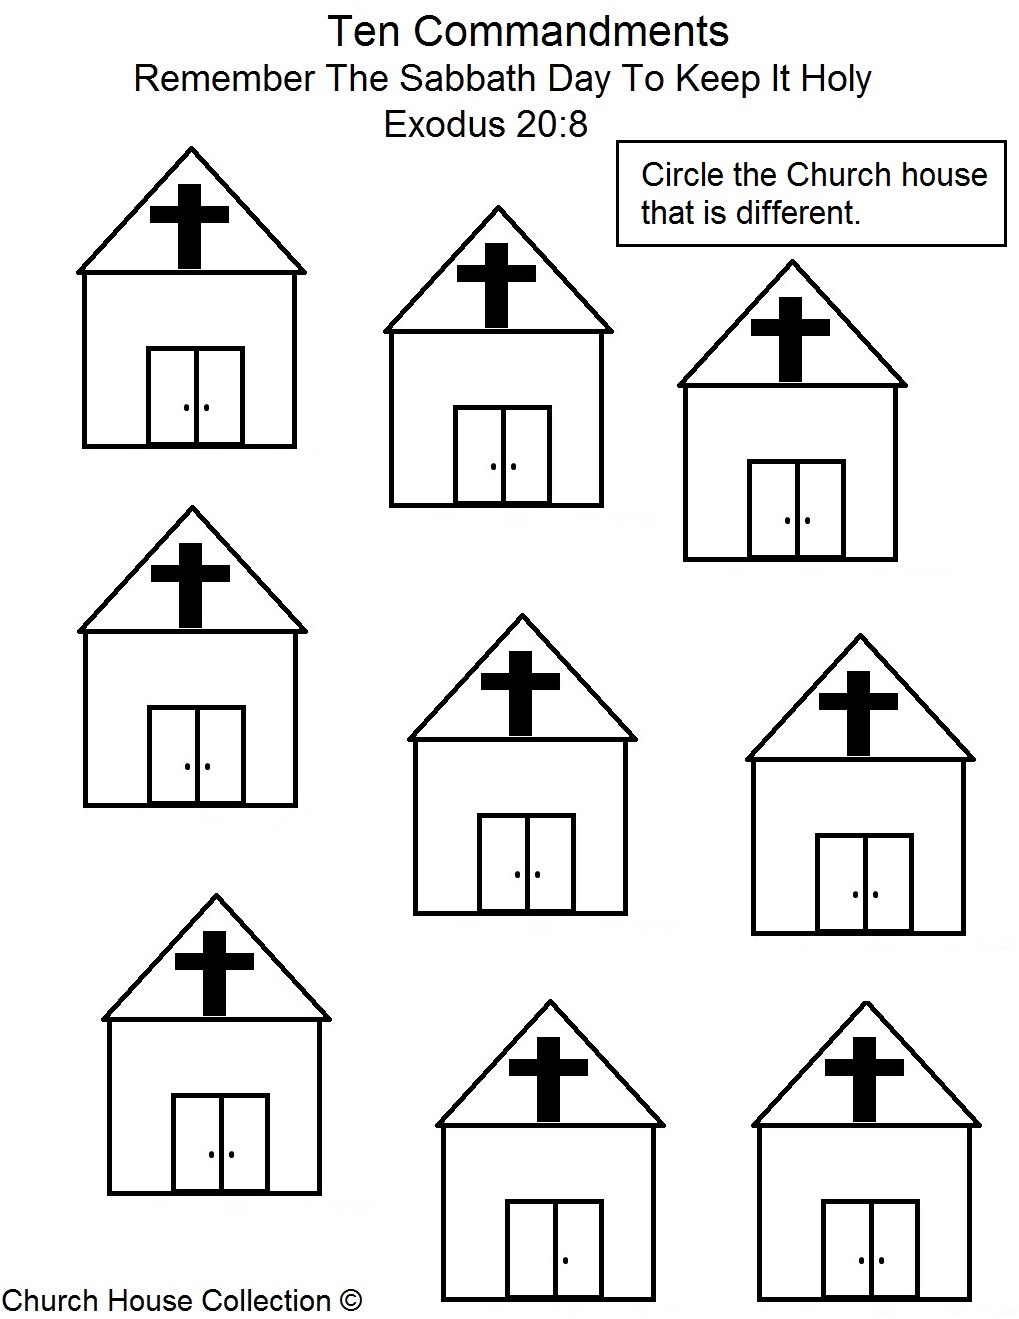 Church House Collection Blog: Remember The Sabbath Day To Keep It  math worksheets, worksheets, free worksheets, education, and grade worksheets Ten Commandments Worksheets For Kids 1319 x 1019